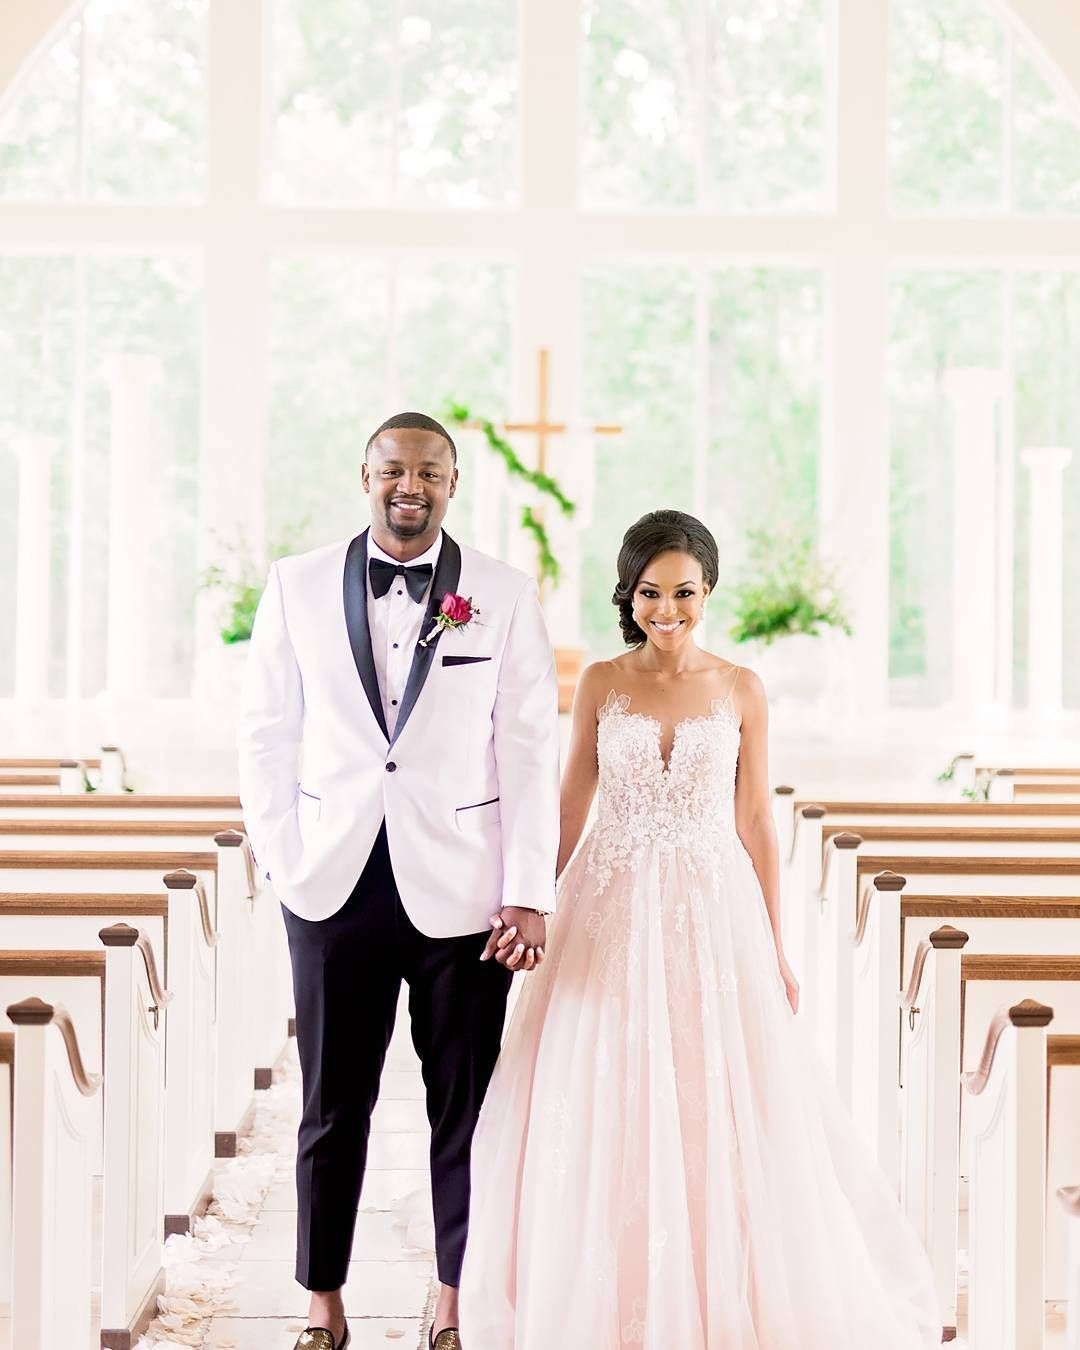 The Moore wedding was overly beautiful. We loved seeing the love ...